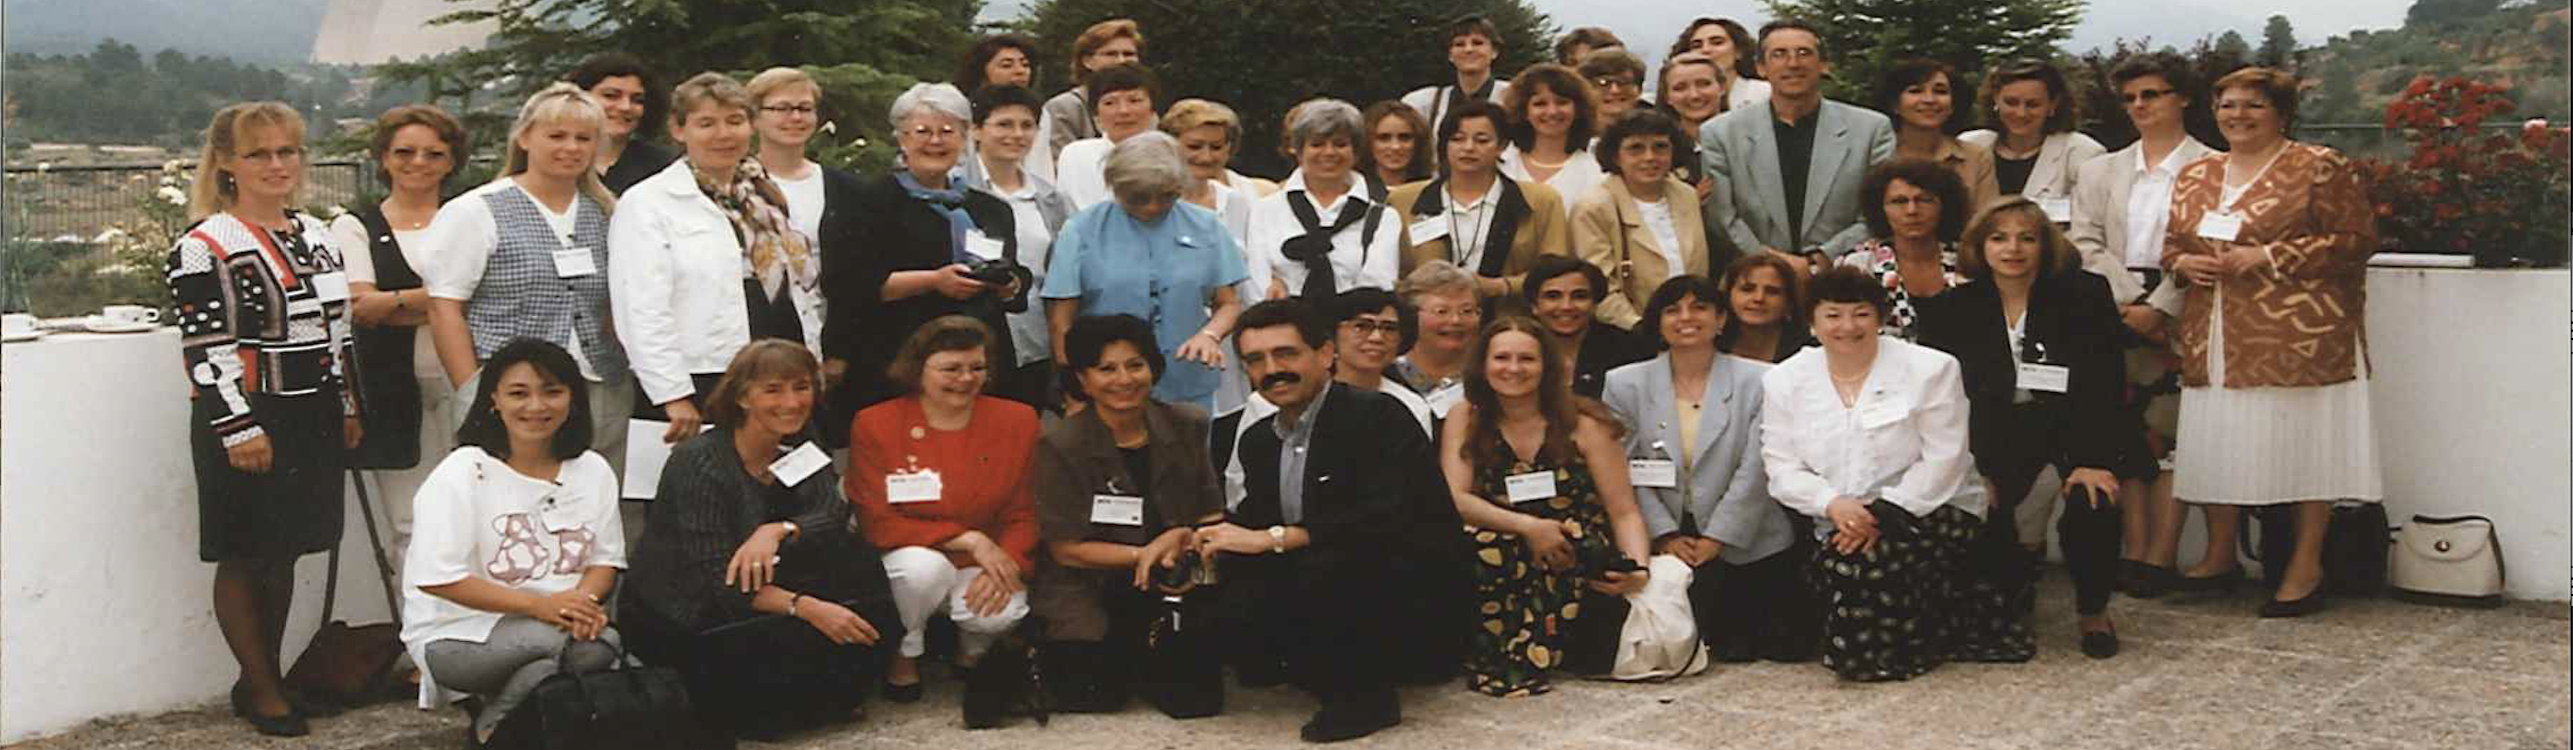 1997 WiN Global Annual Conference (Valencia)